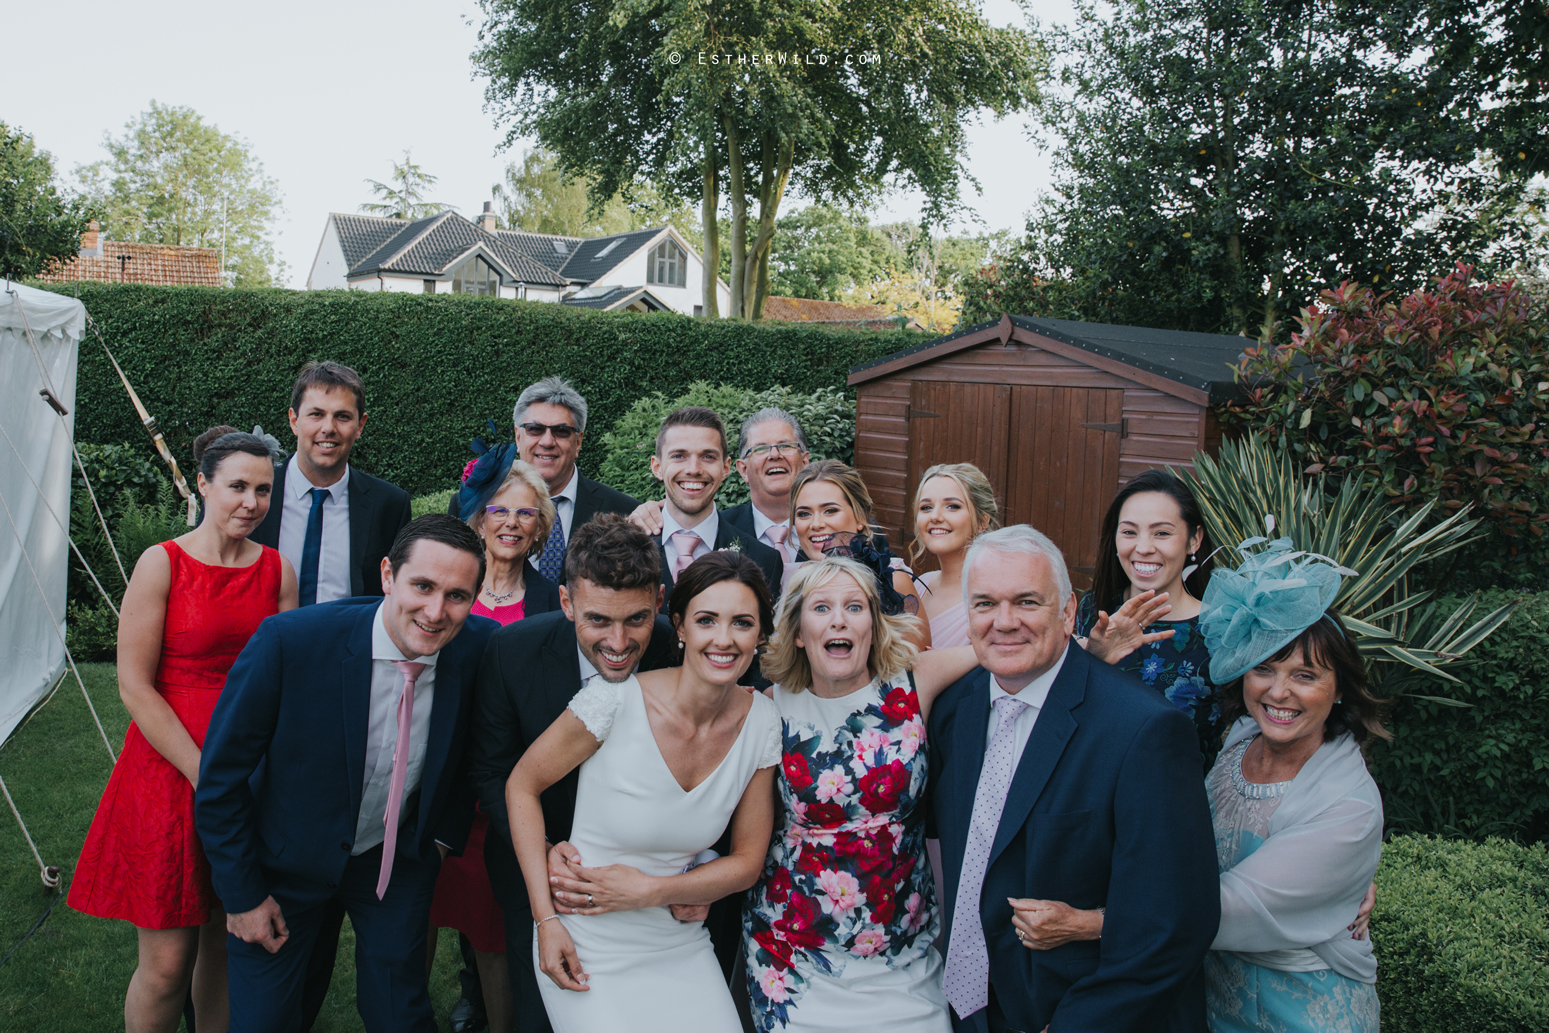 Wootton_Wedding_Copyright_Esther_Wild_Photographer_IMG_2230.jpg